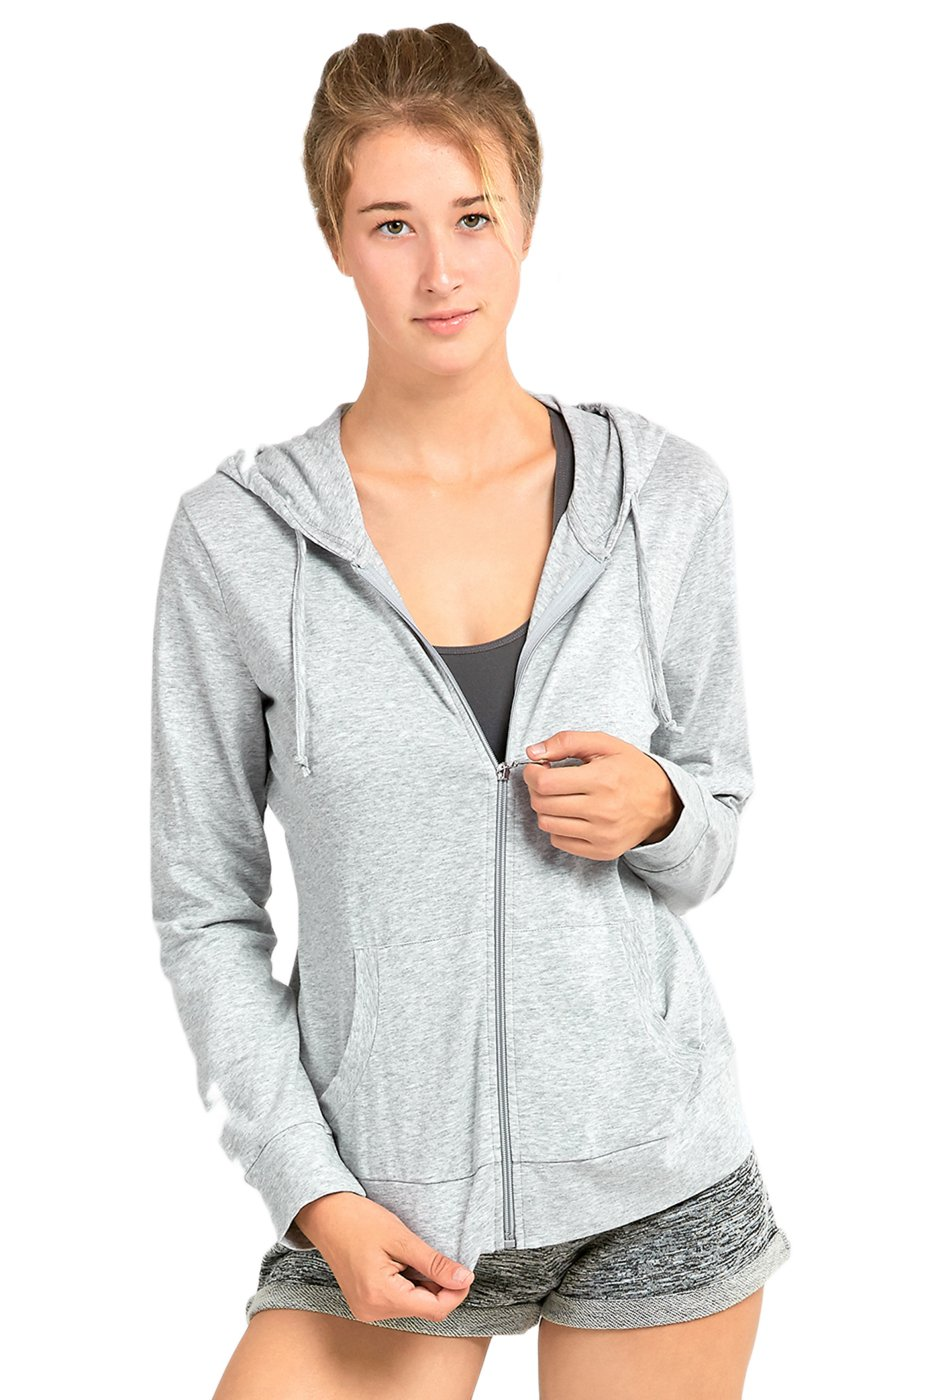 Sofra Women's Thin Cotton Zip Up Hoodie Jacket (S, Heather Gray)